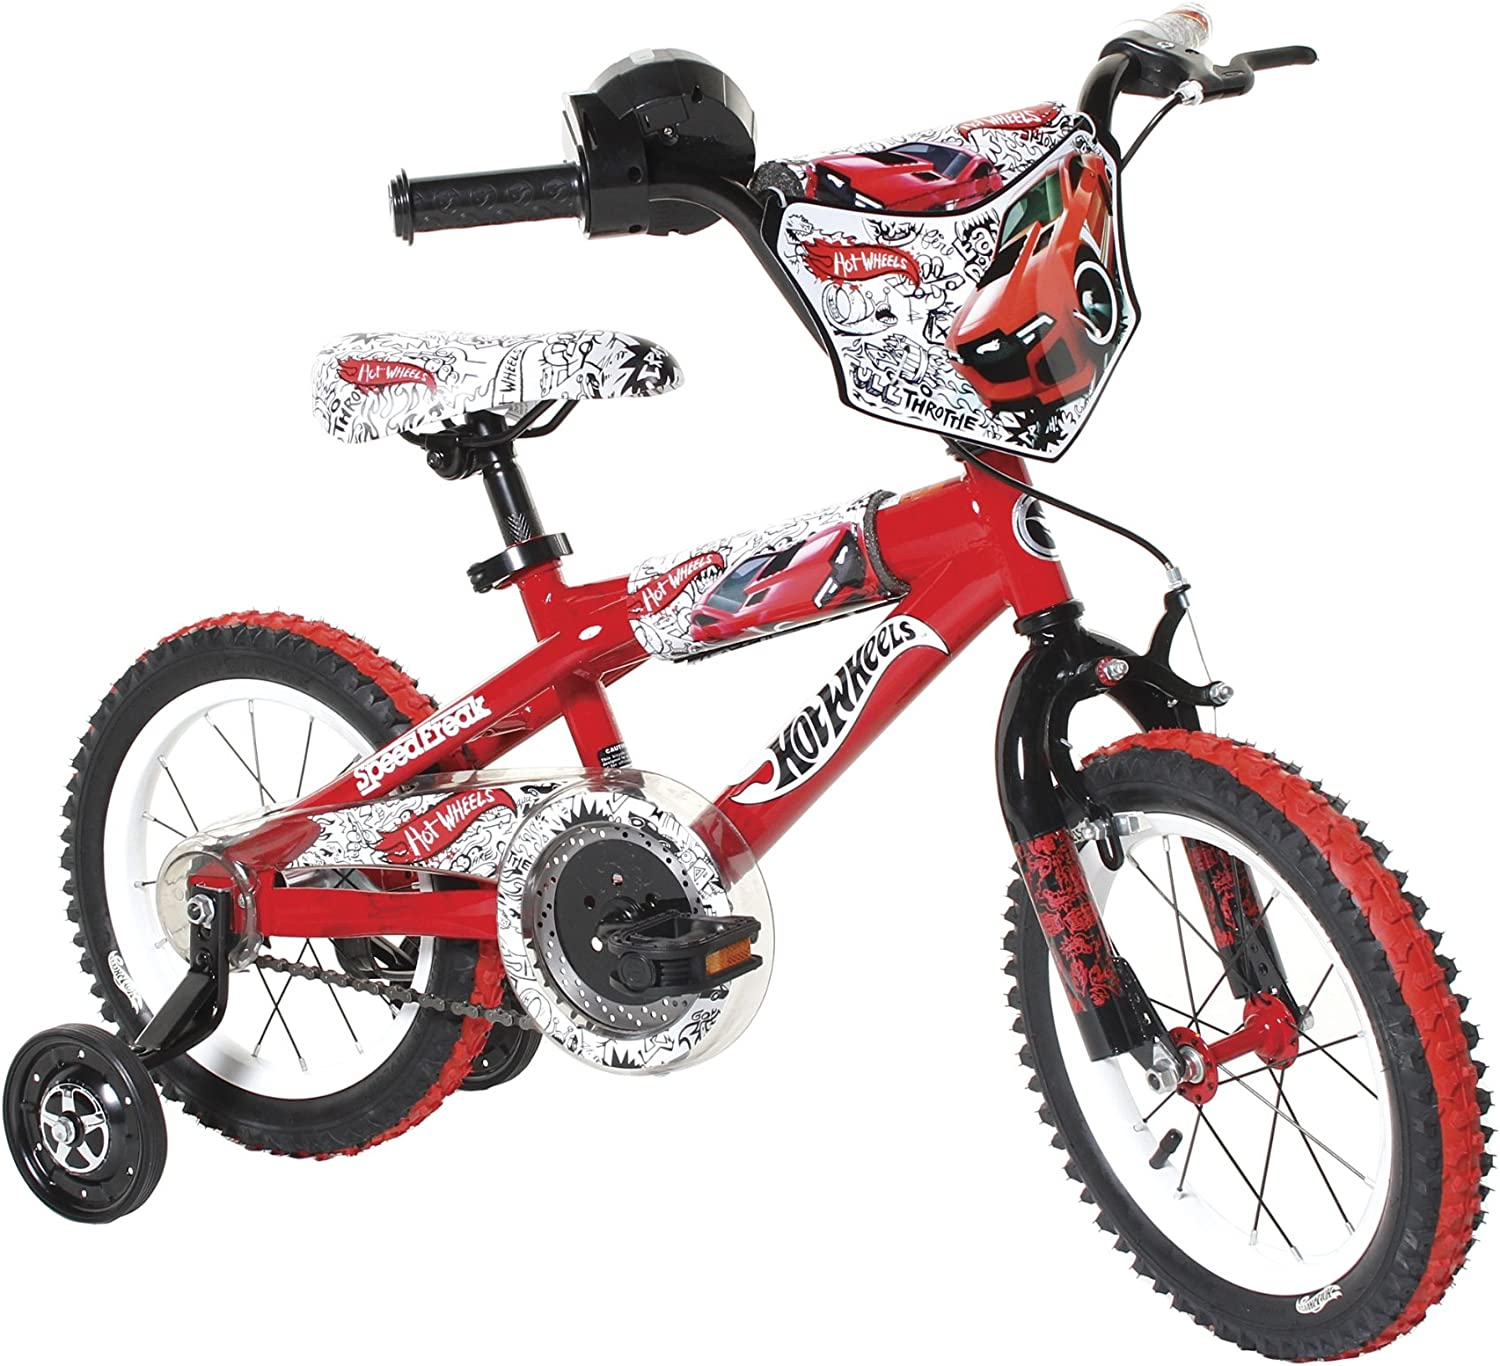 Dynacraft Boy's 14Inch Hot Wheels Bike, Red White Black